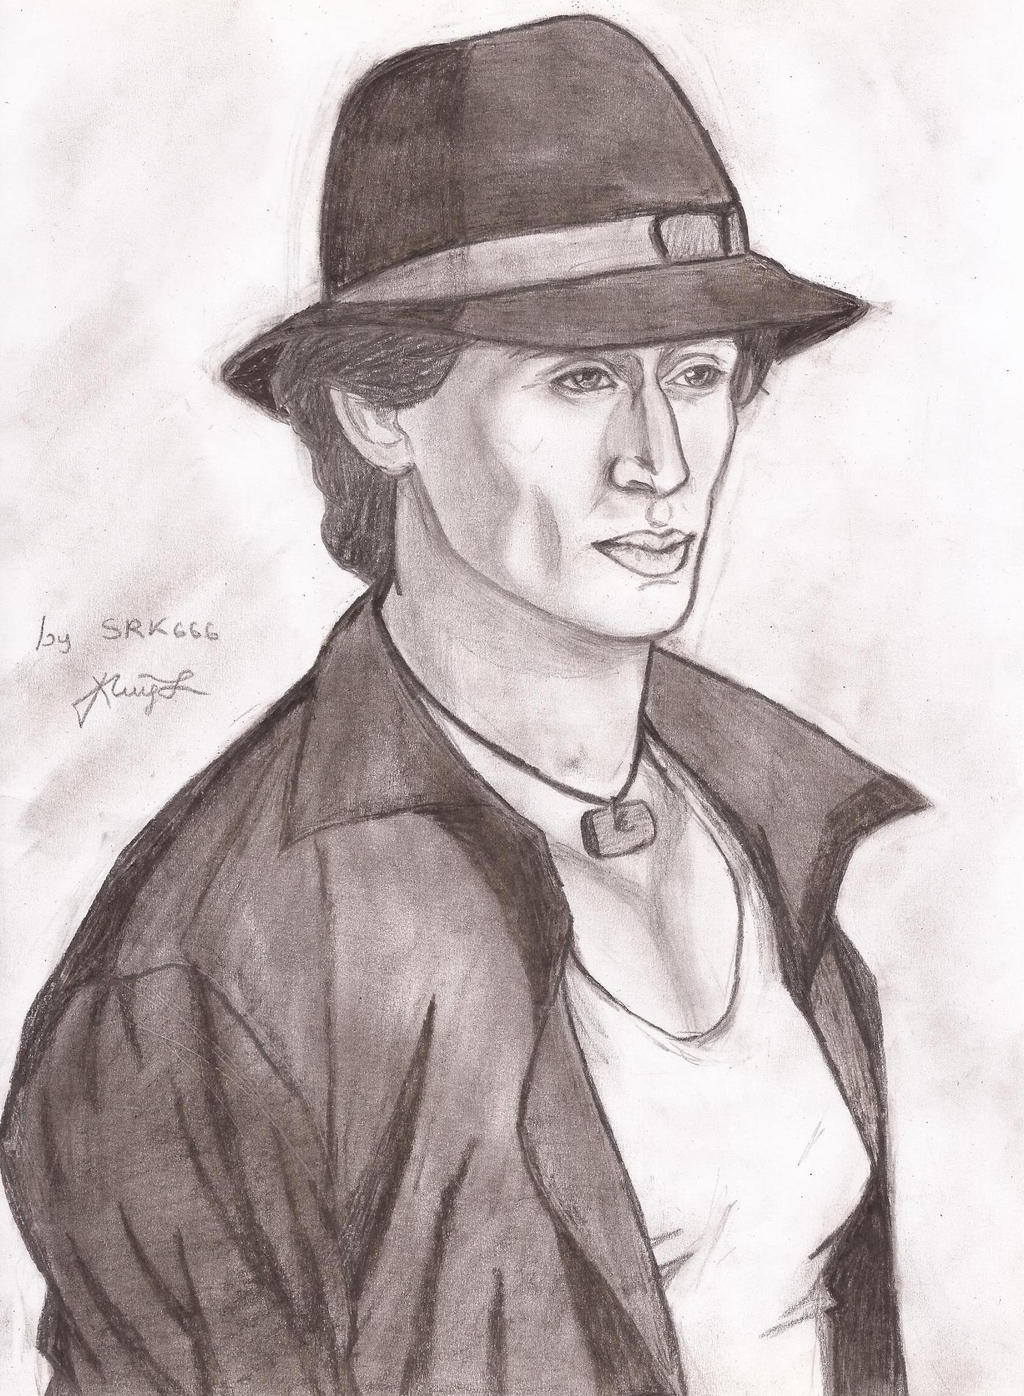 tiger shroff by srk666 on DeviantArt